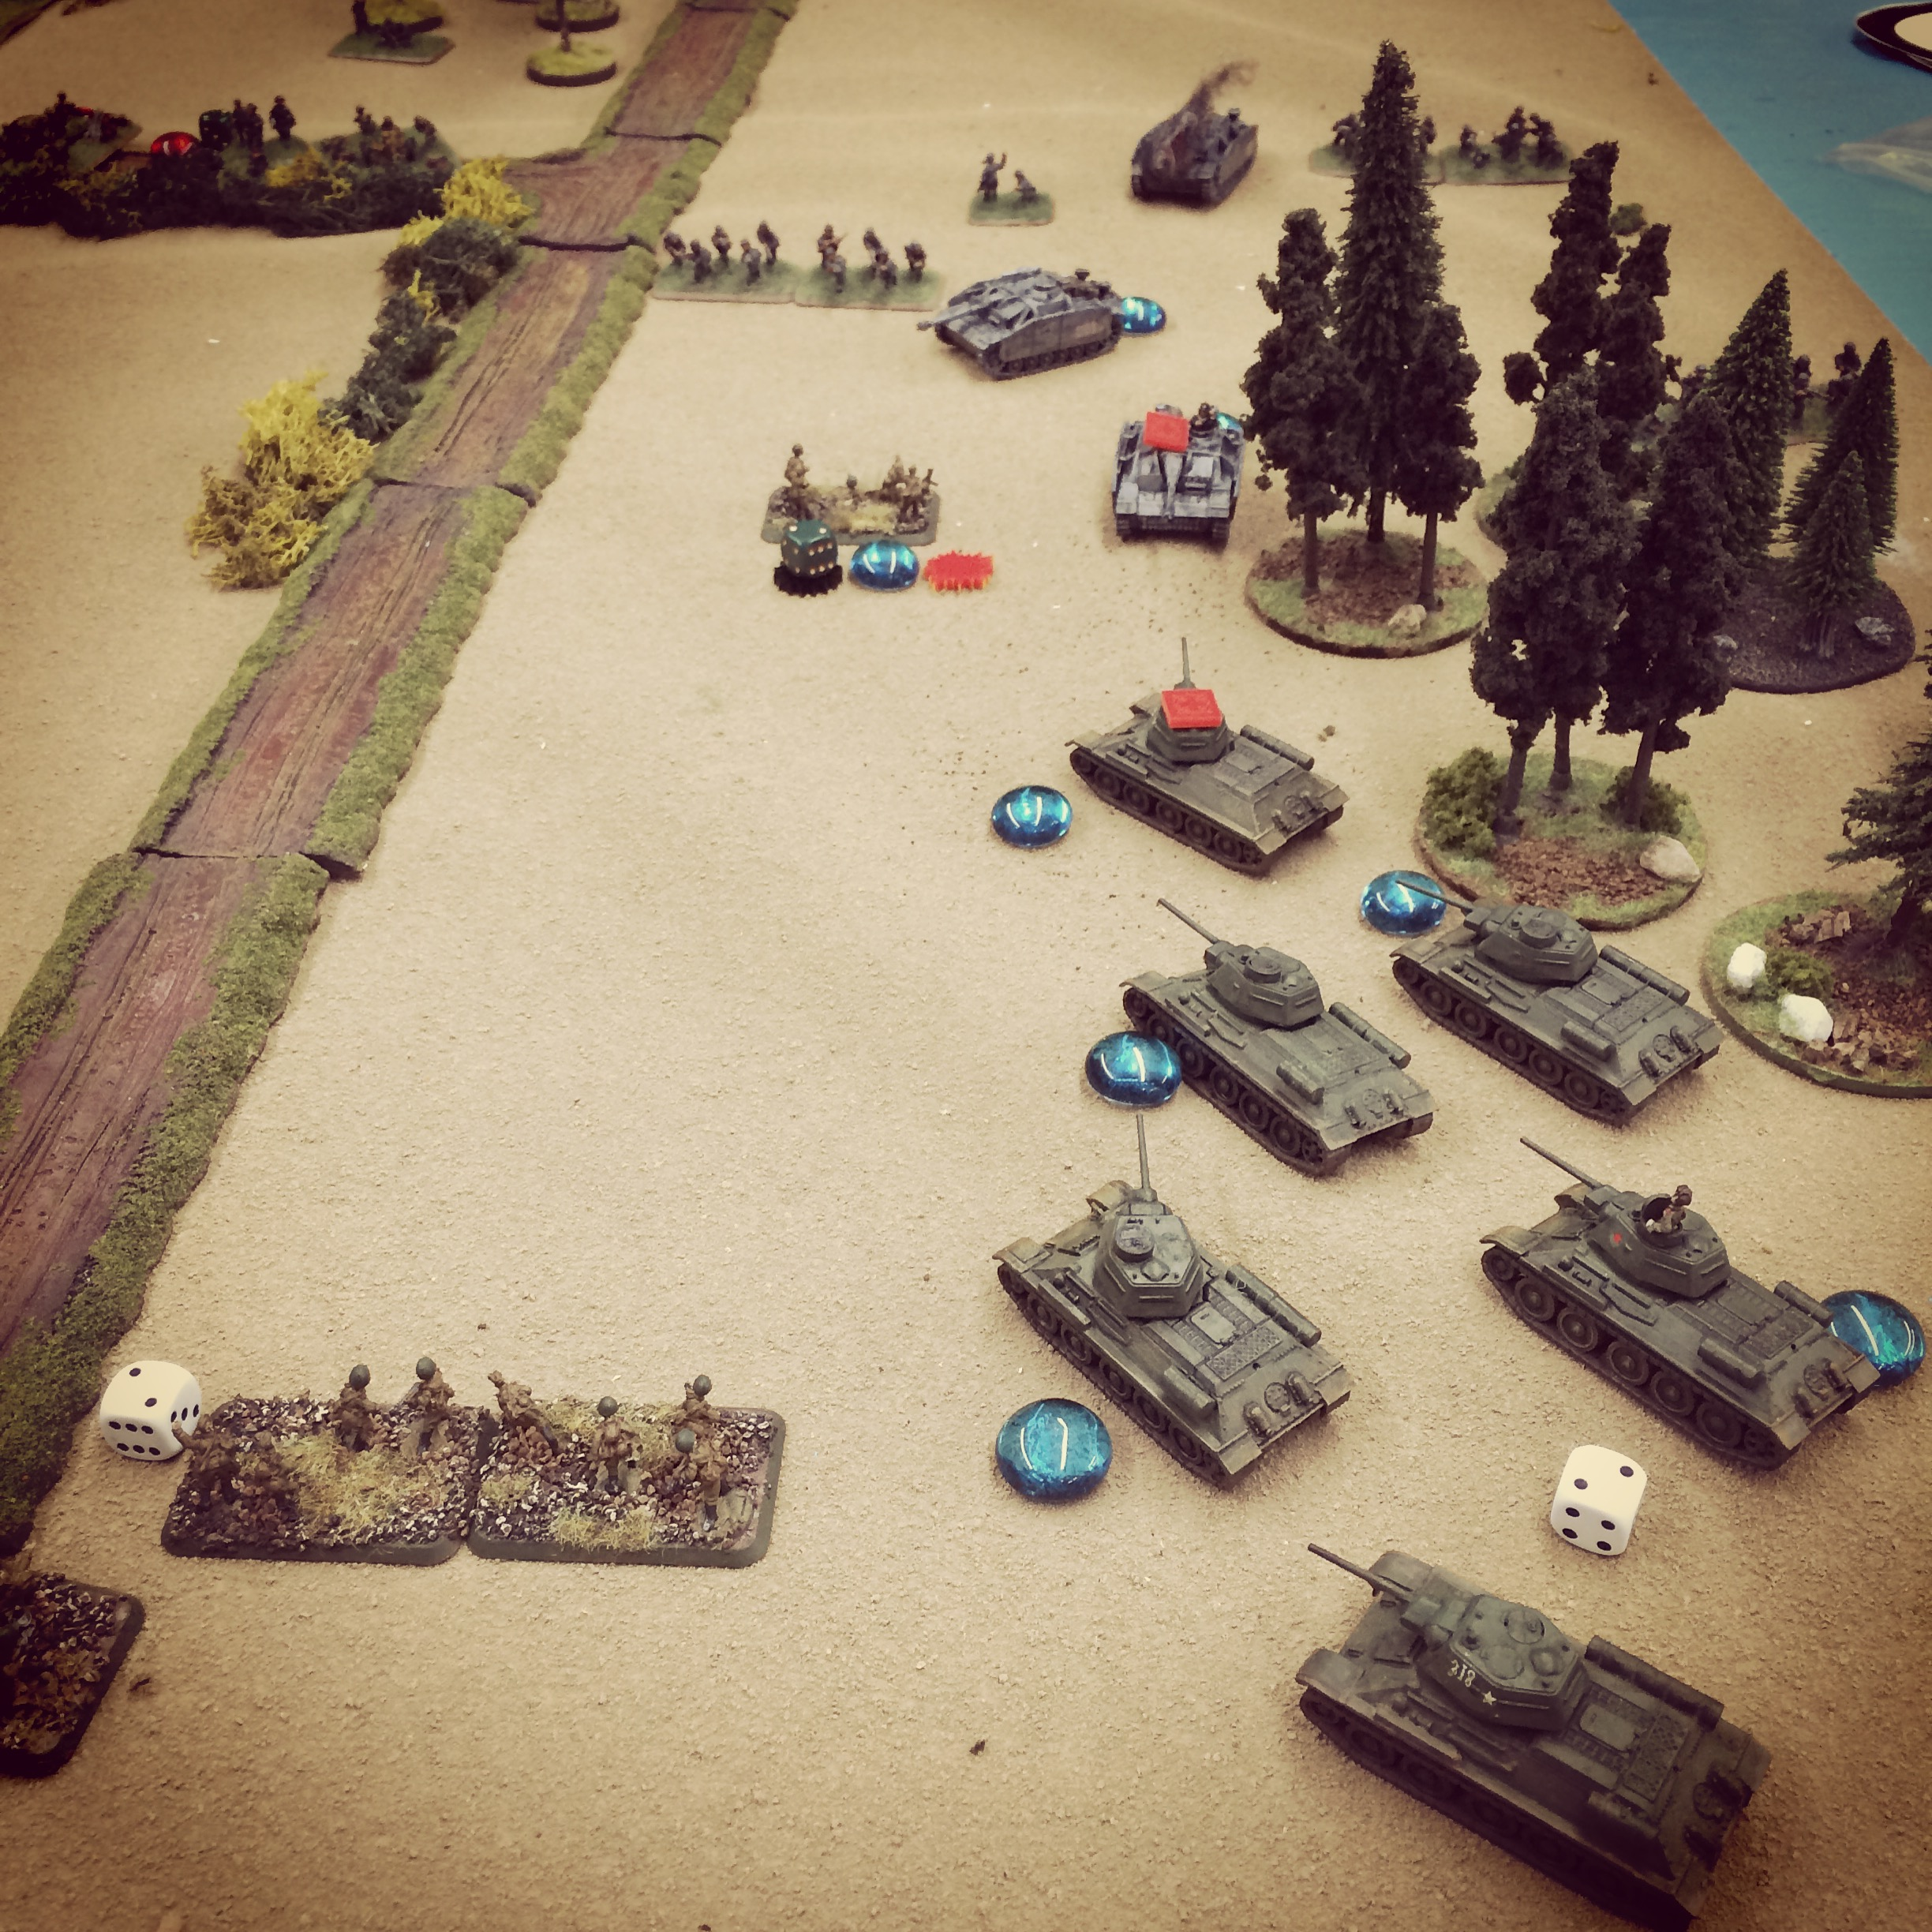 T-34s and StuGs duel at the edge of the forest as infantry begins to take heavy casualties on both sides